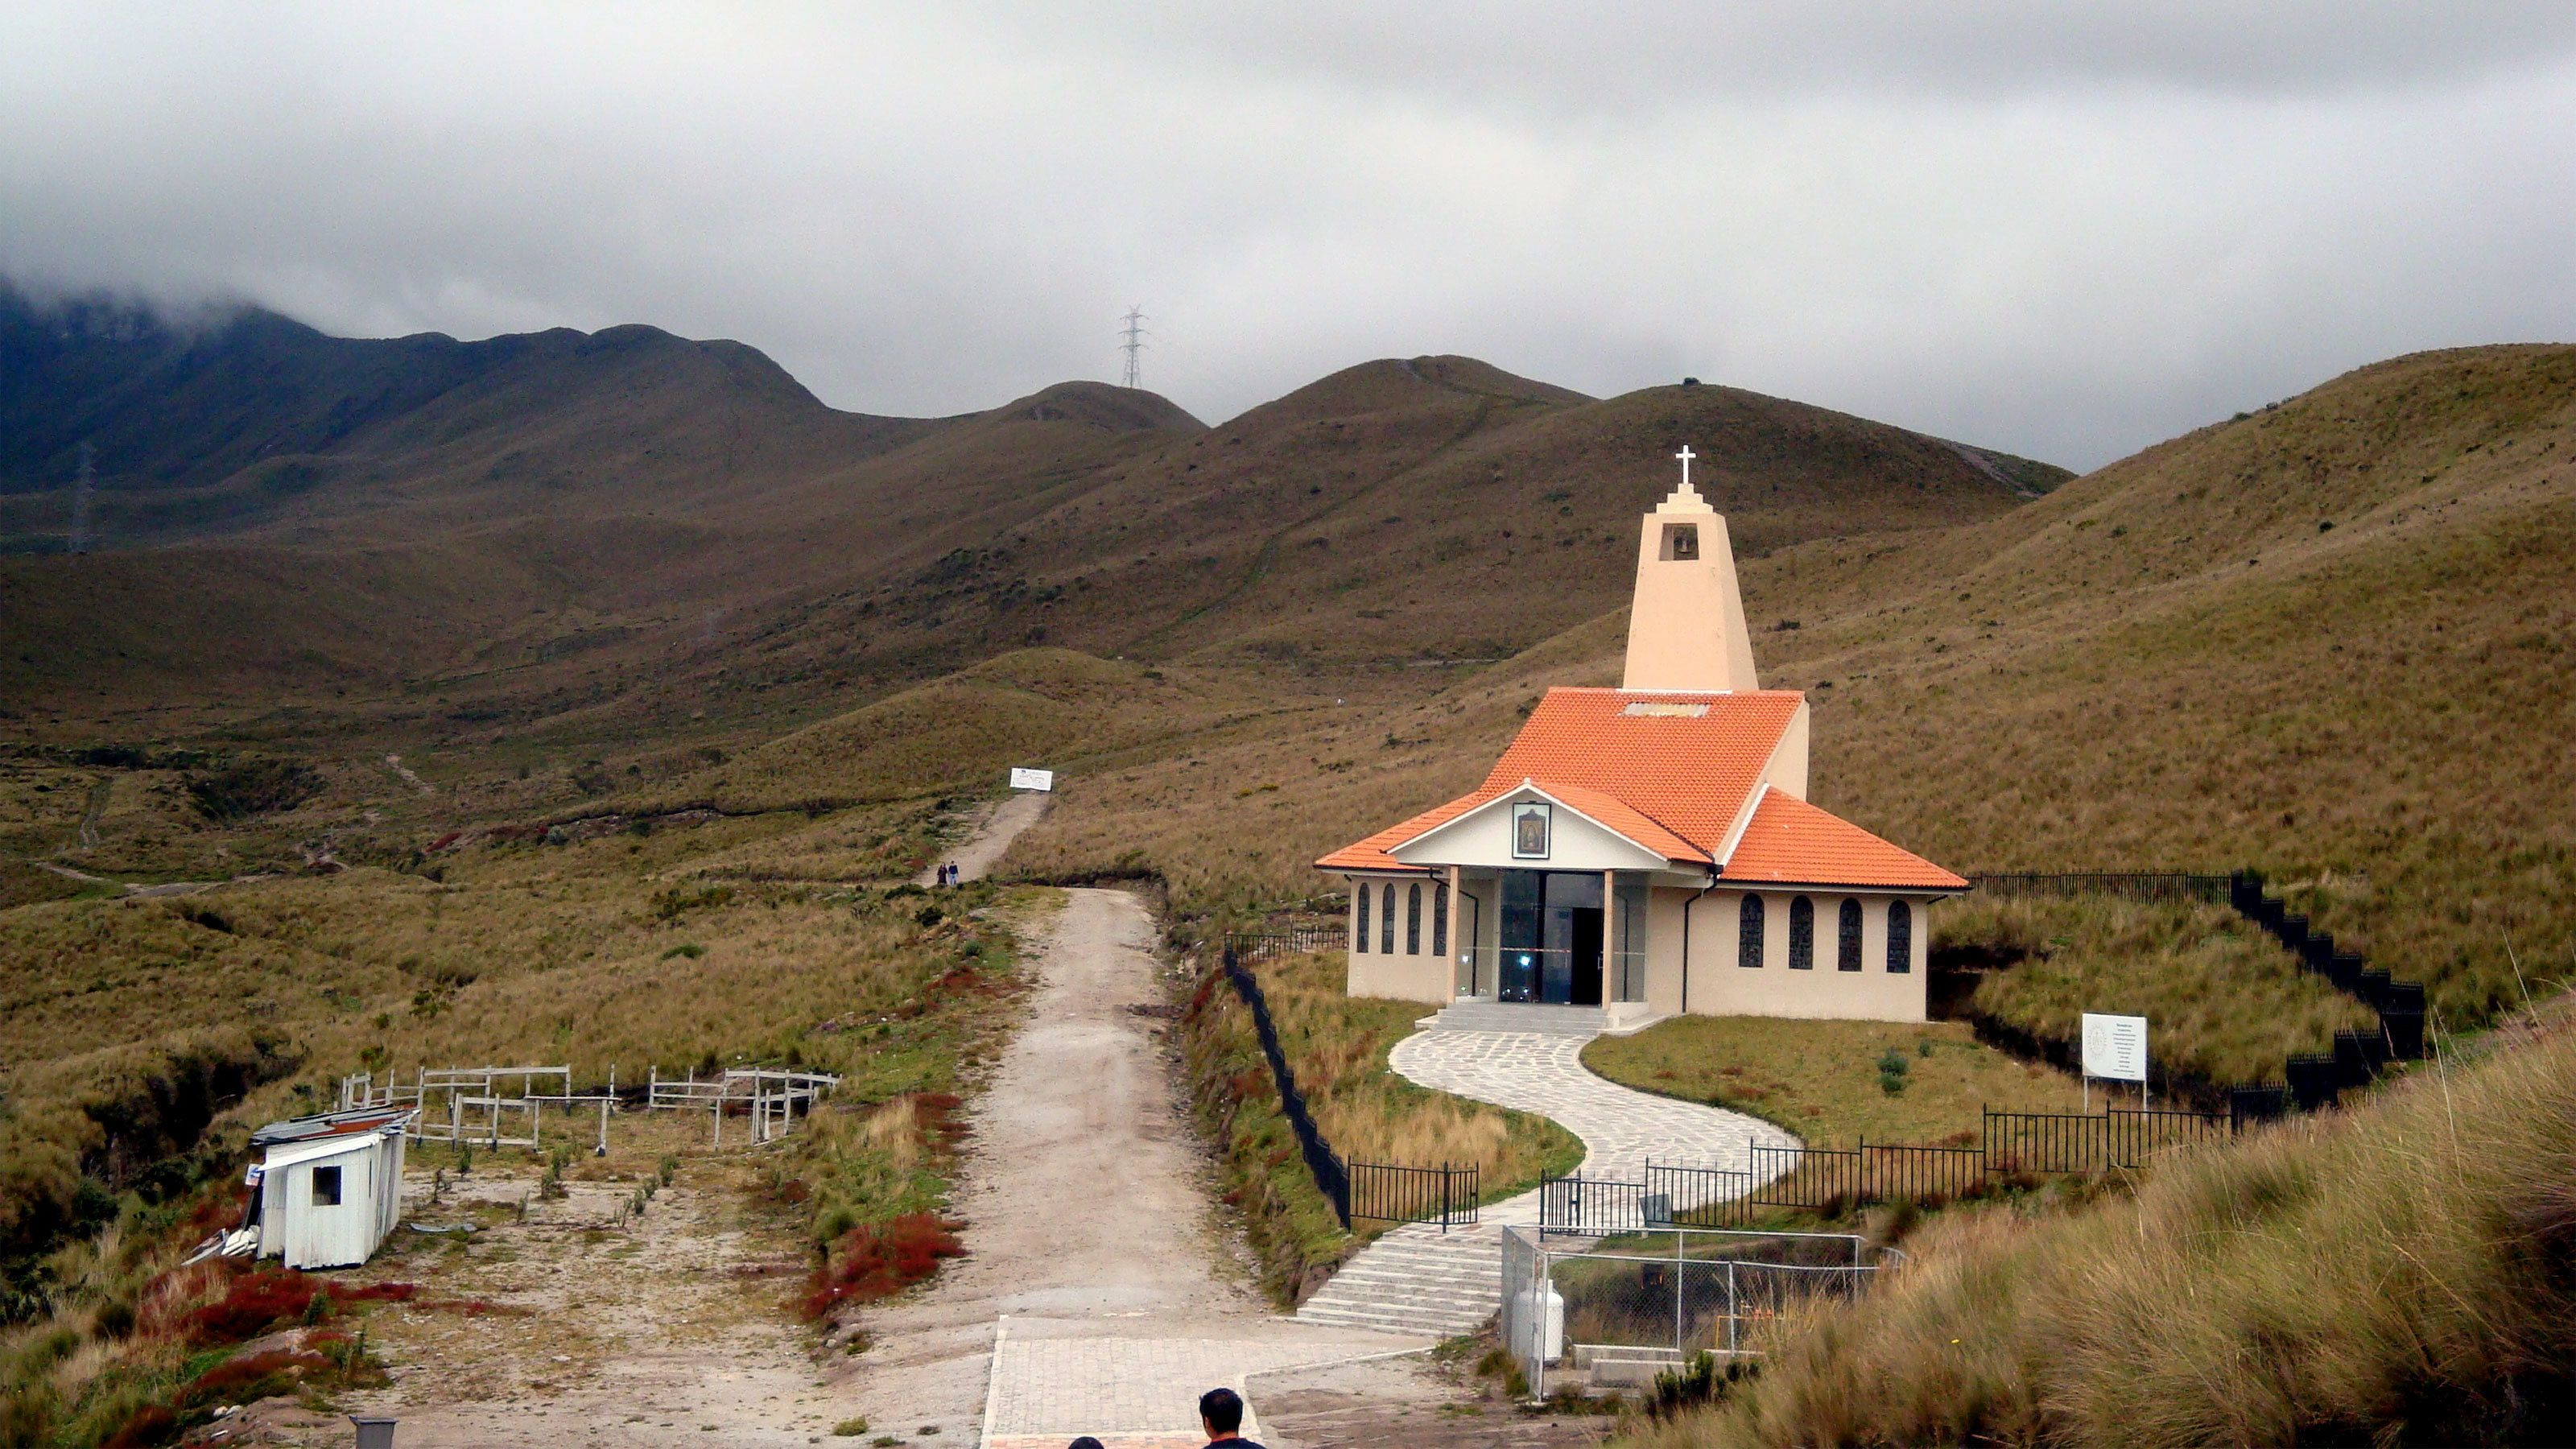 small church development in the hills of Ecuador